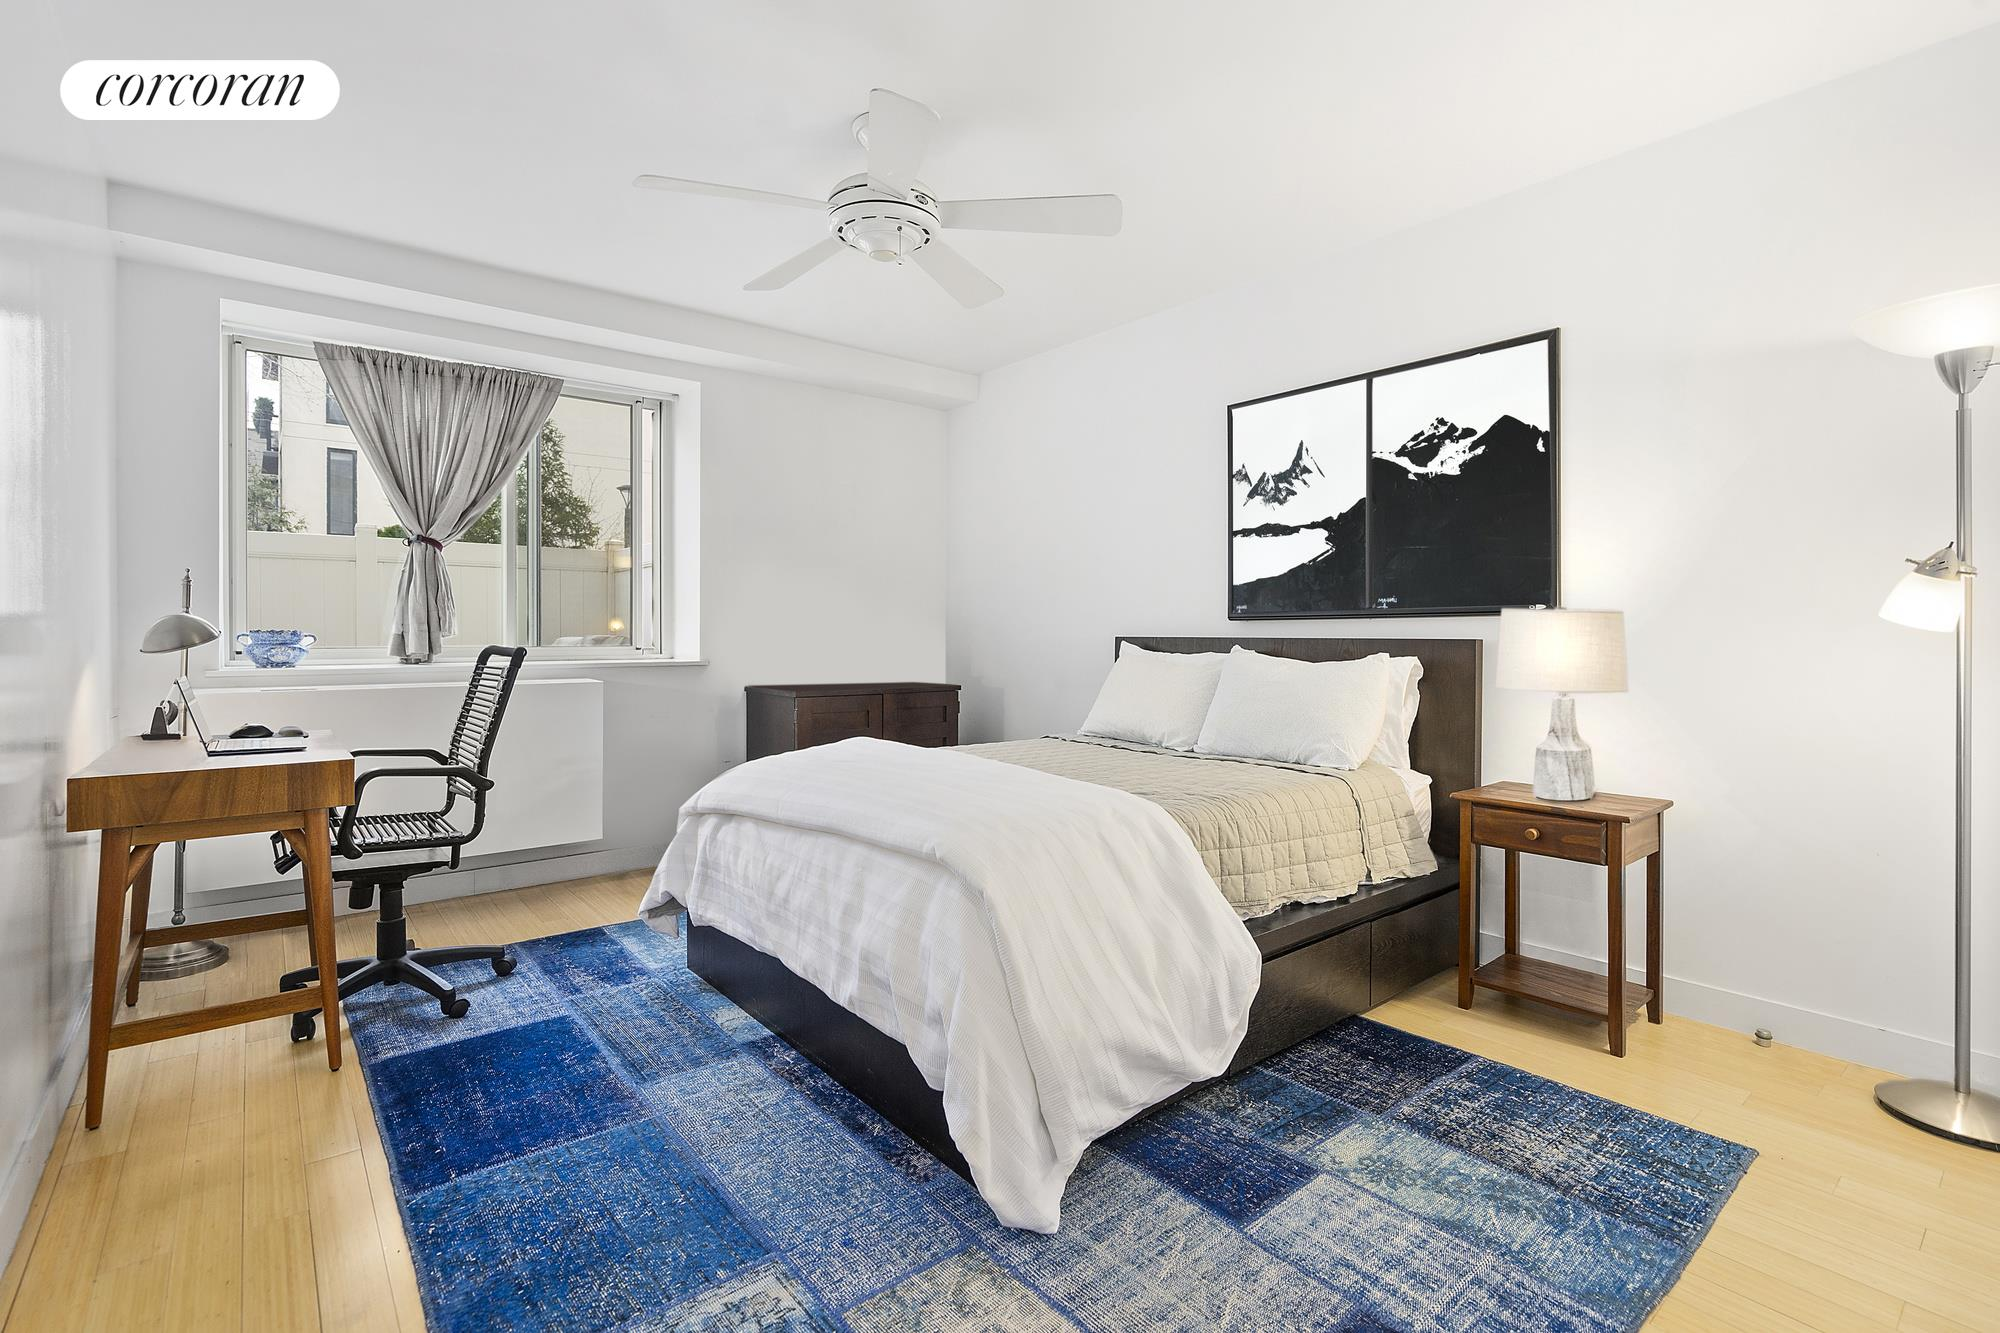 Apartment for sale at 301 West 115th Street, Apt 3B